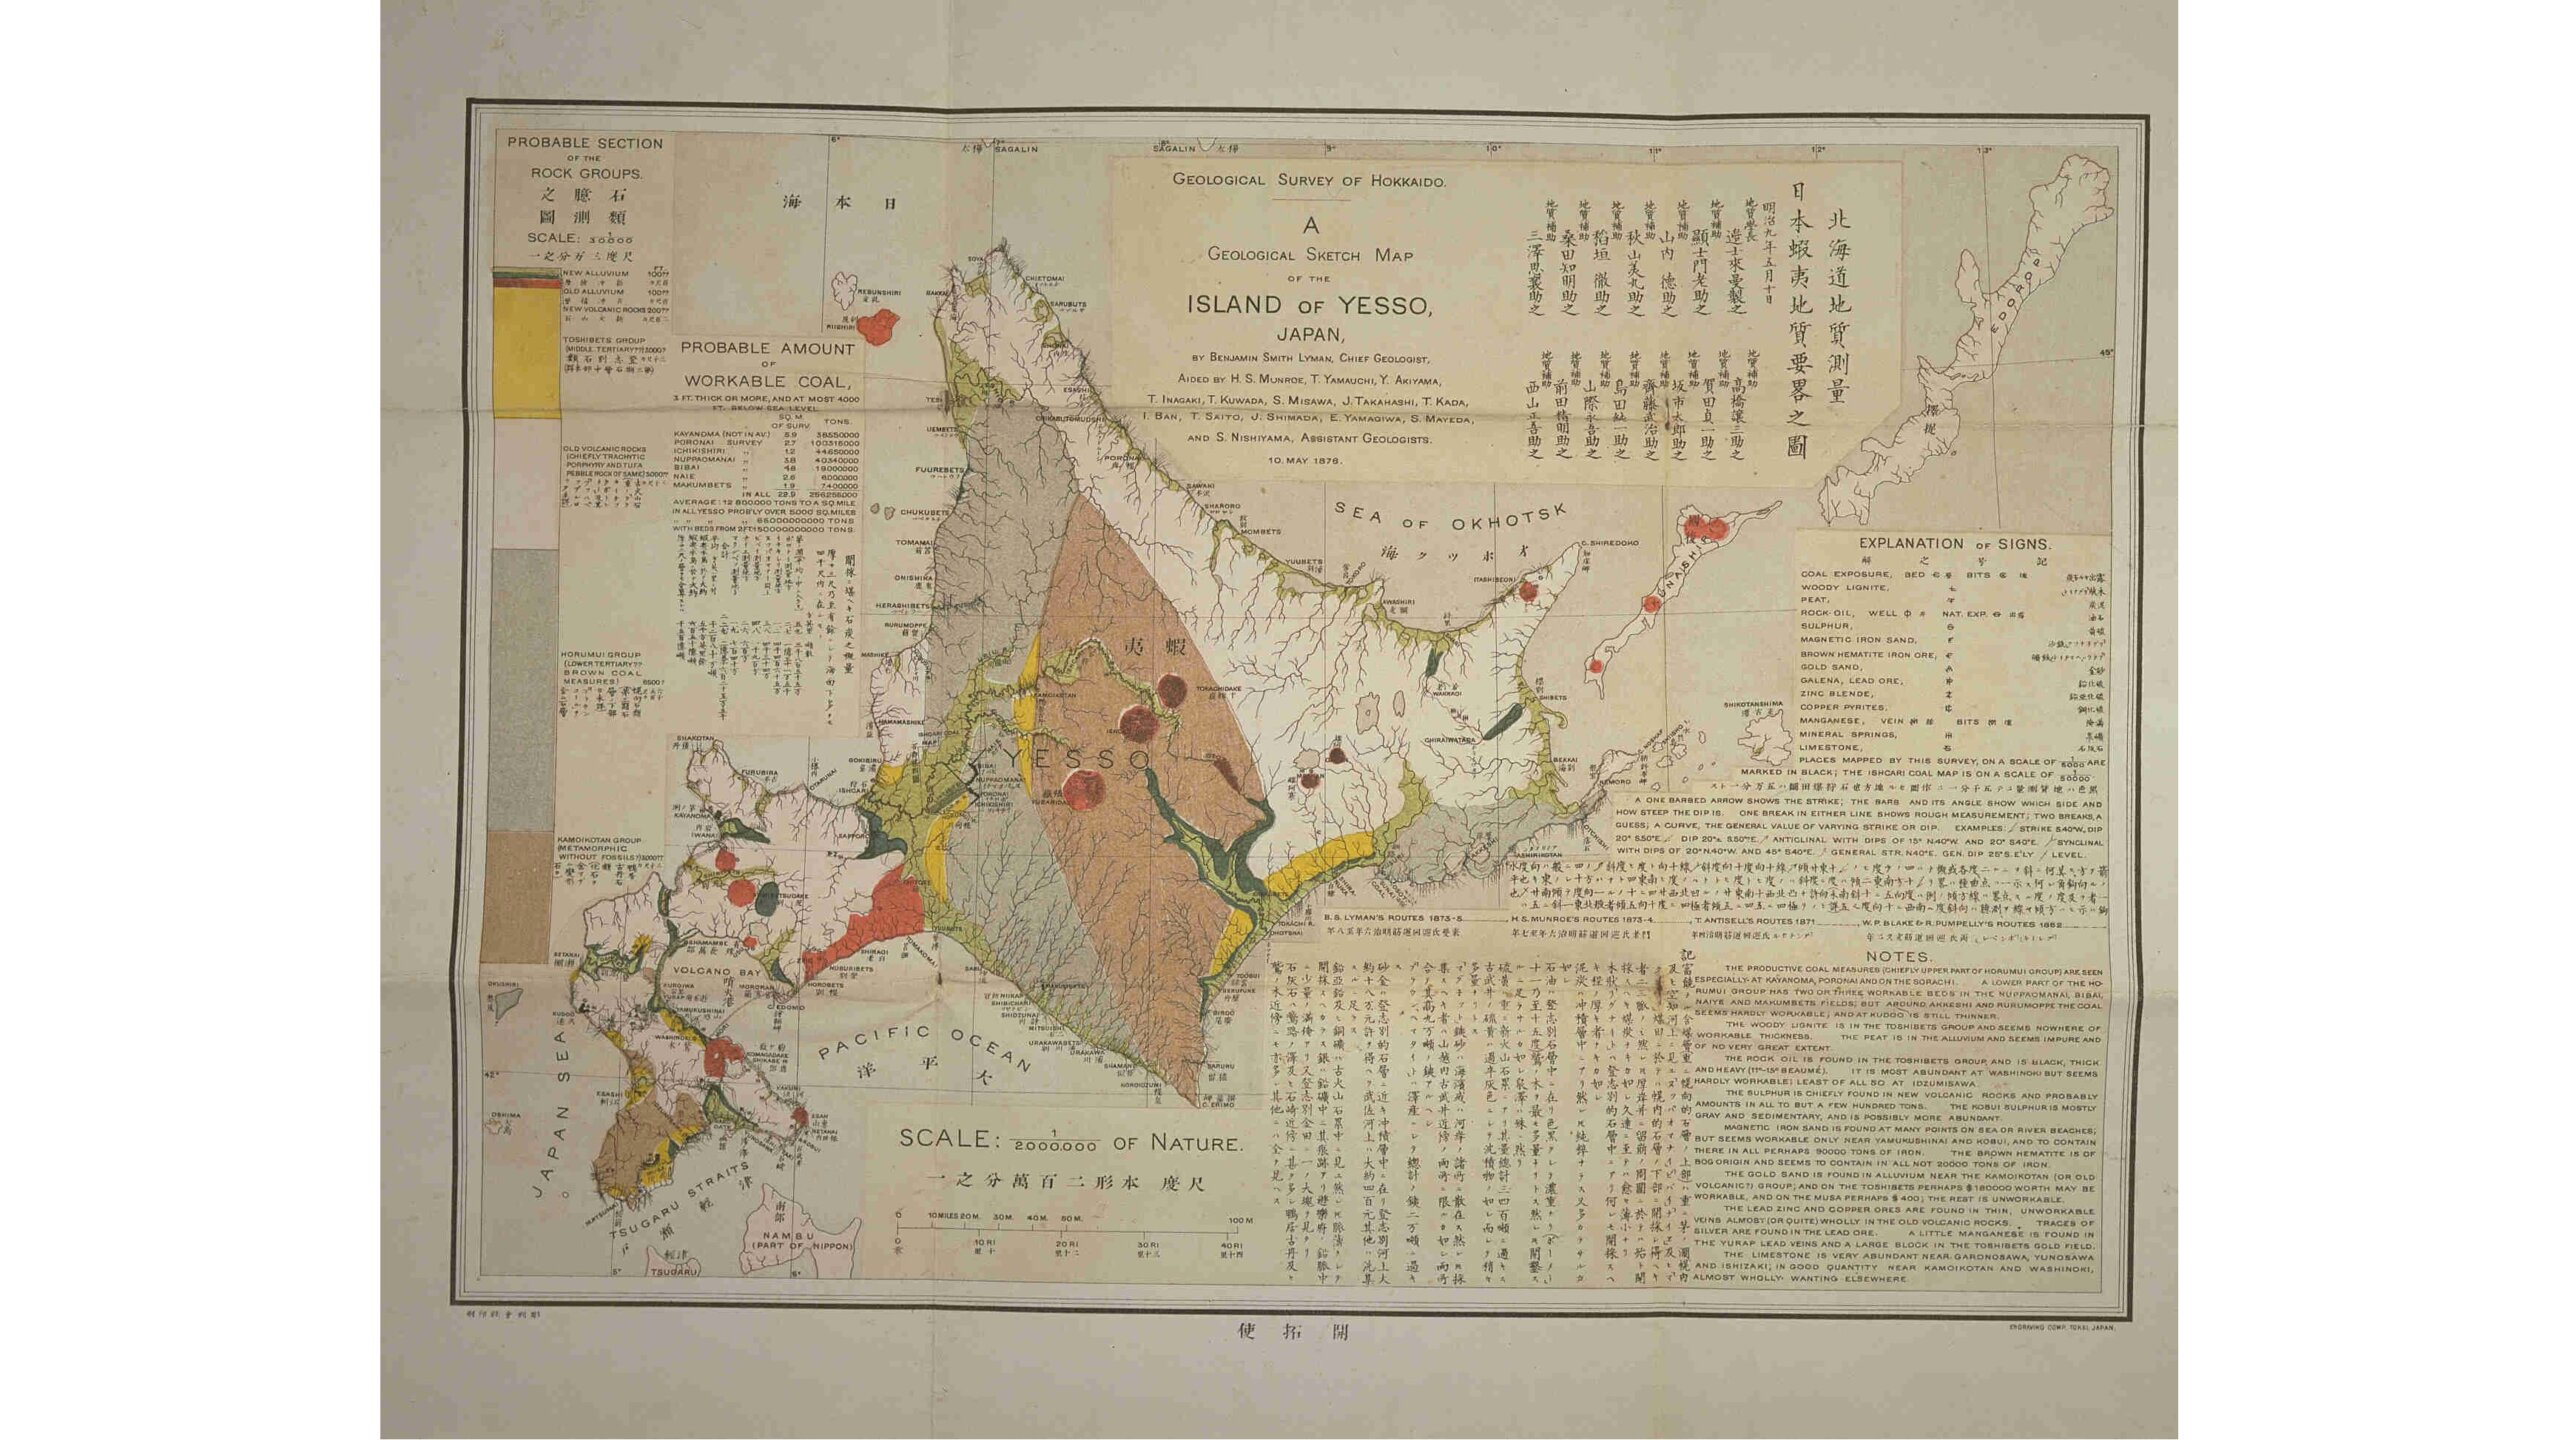 """Lyman's """"Geological Sketch Map of the Island of Yesso, Japan"""" published in 1873. The examination of underground resources was seen as an important step towards modernization in Japan at the time. The map's publication date, May 10th, is designated as """"Geology Day"""" in Japan.  photo: Hokkaido University Library"""